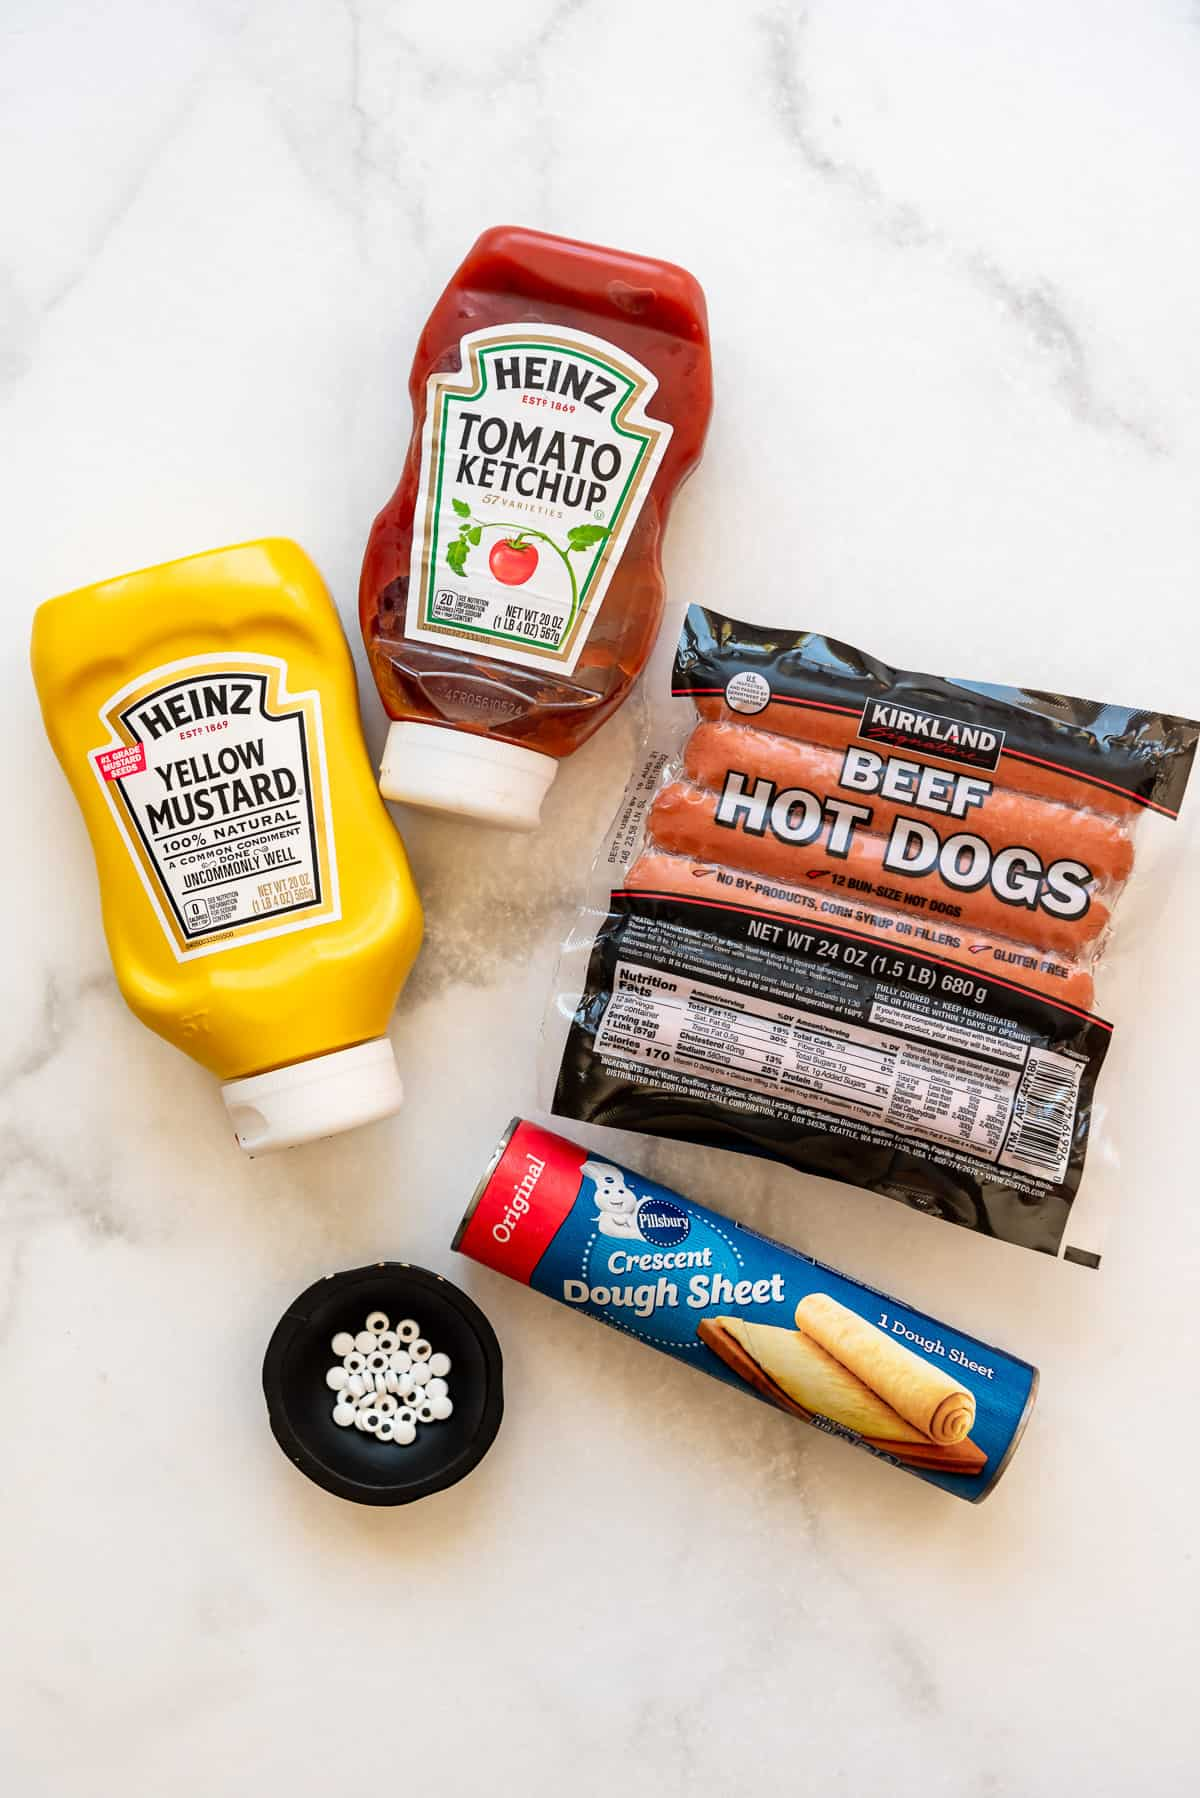 ketchup, mustard, hot dogs, a tube of crescent roll dough sheets, and eyeball sprinkles.